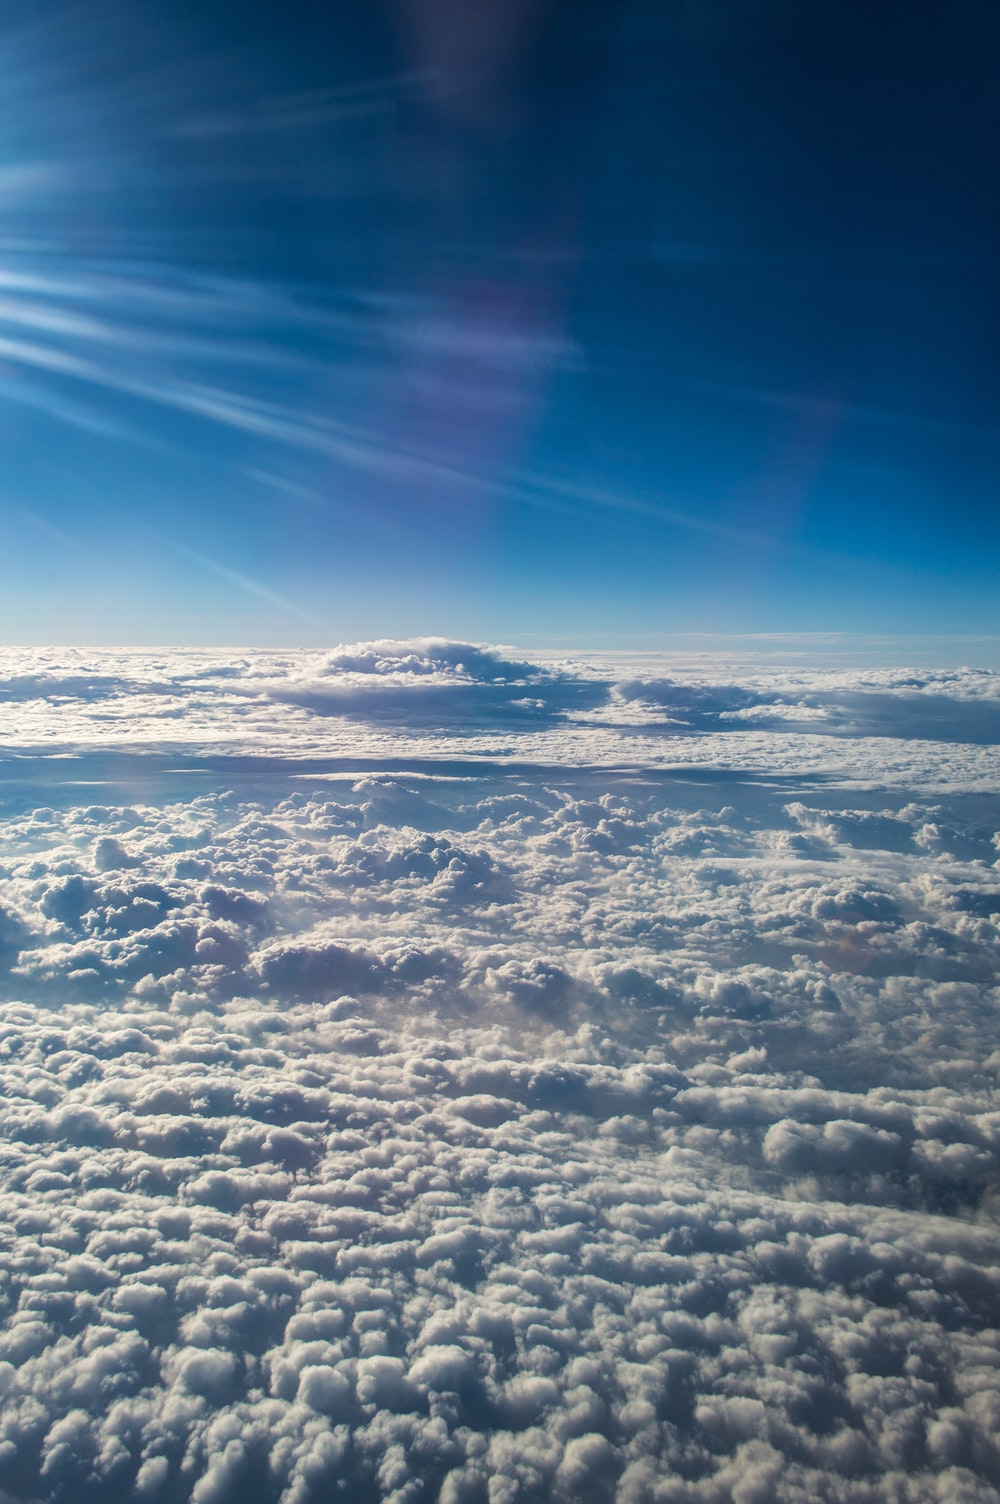 sea of clouds at daytime